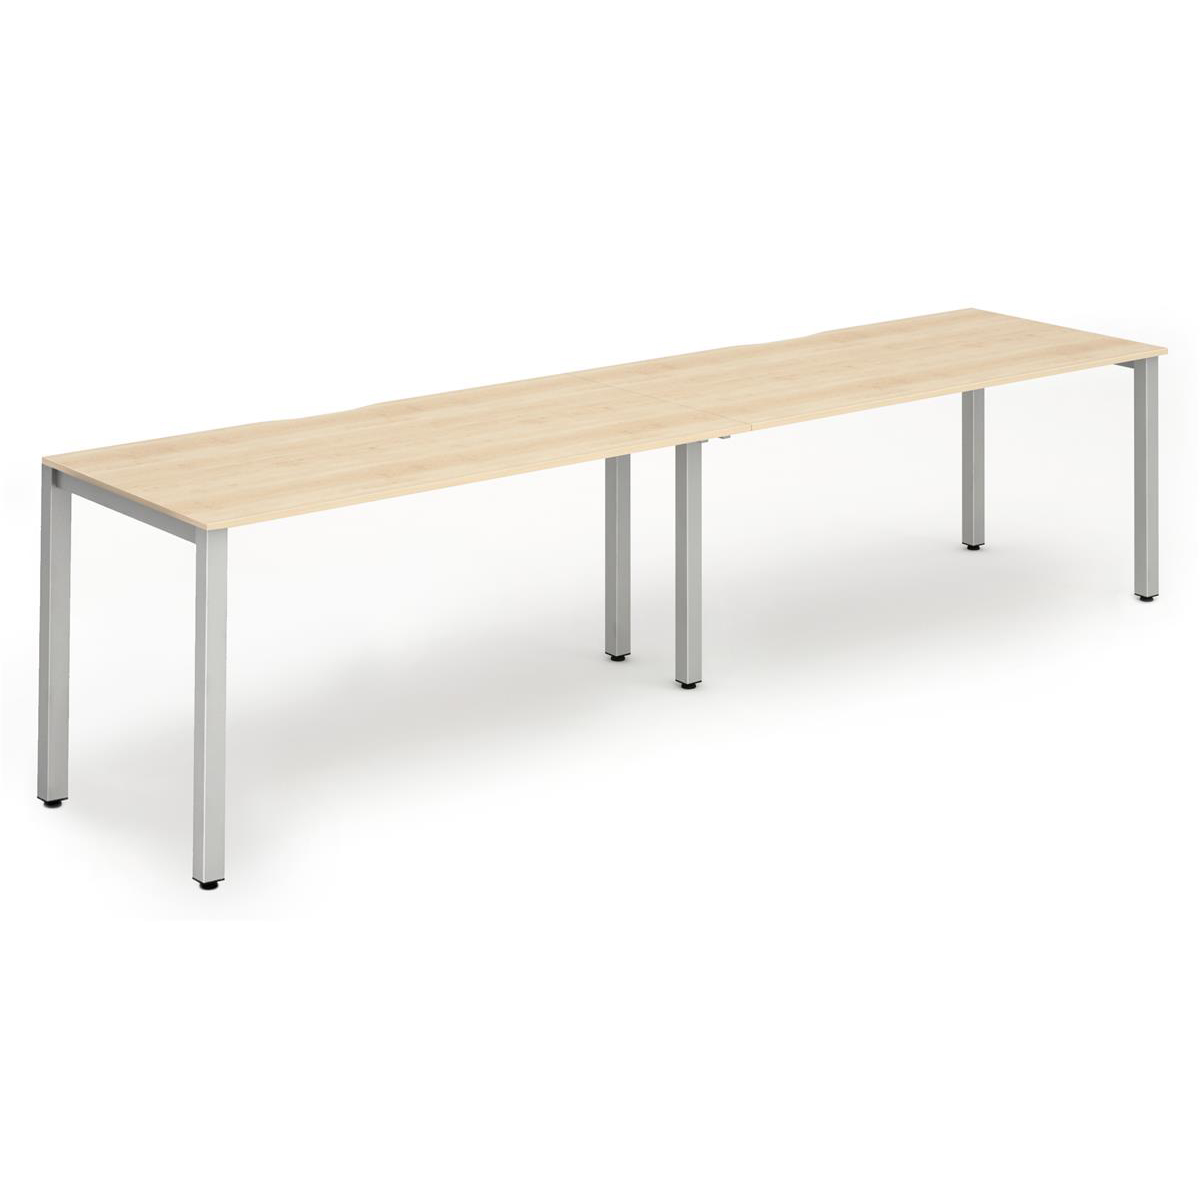 Trexus Bench Desk 2 Person Side to Side Configuration Silver Leg 3200x800mm Maple Ref BE366